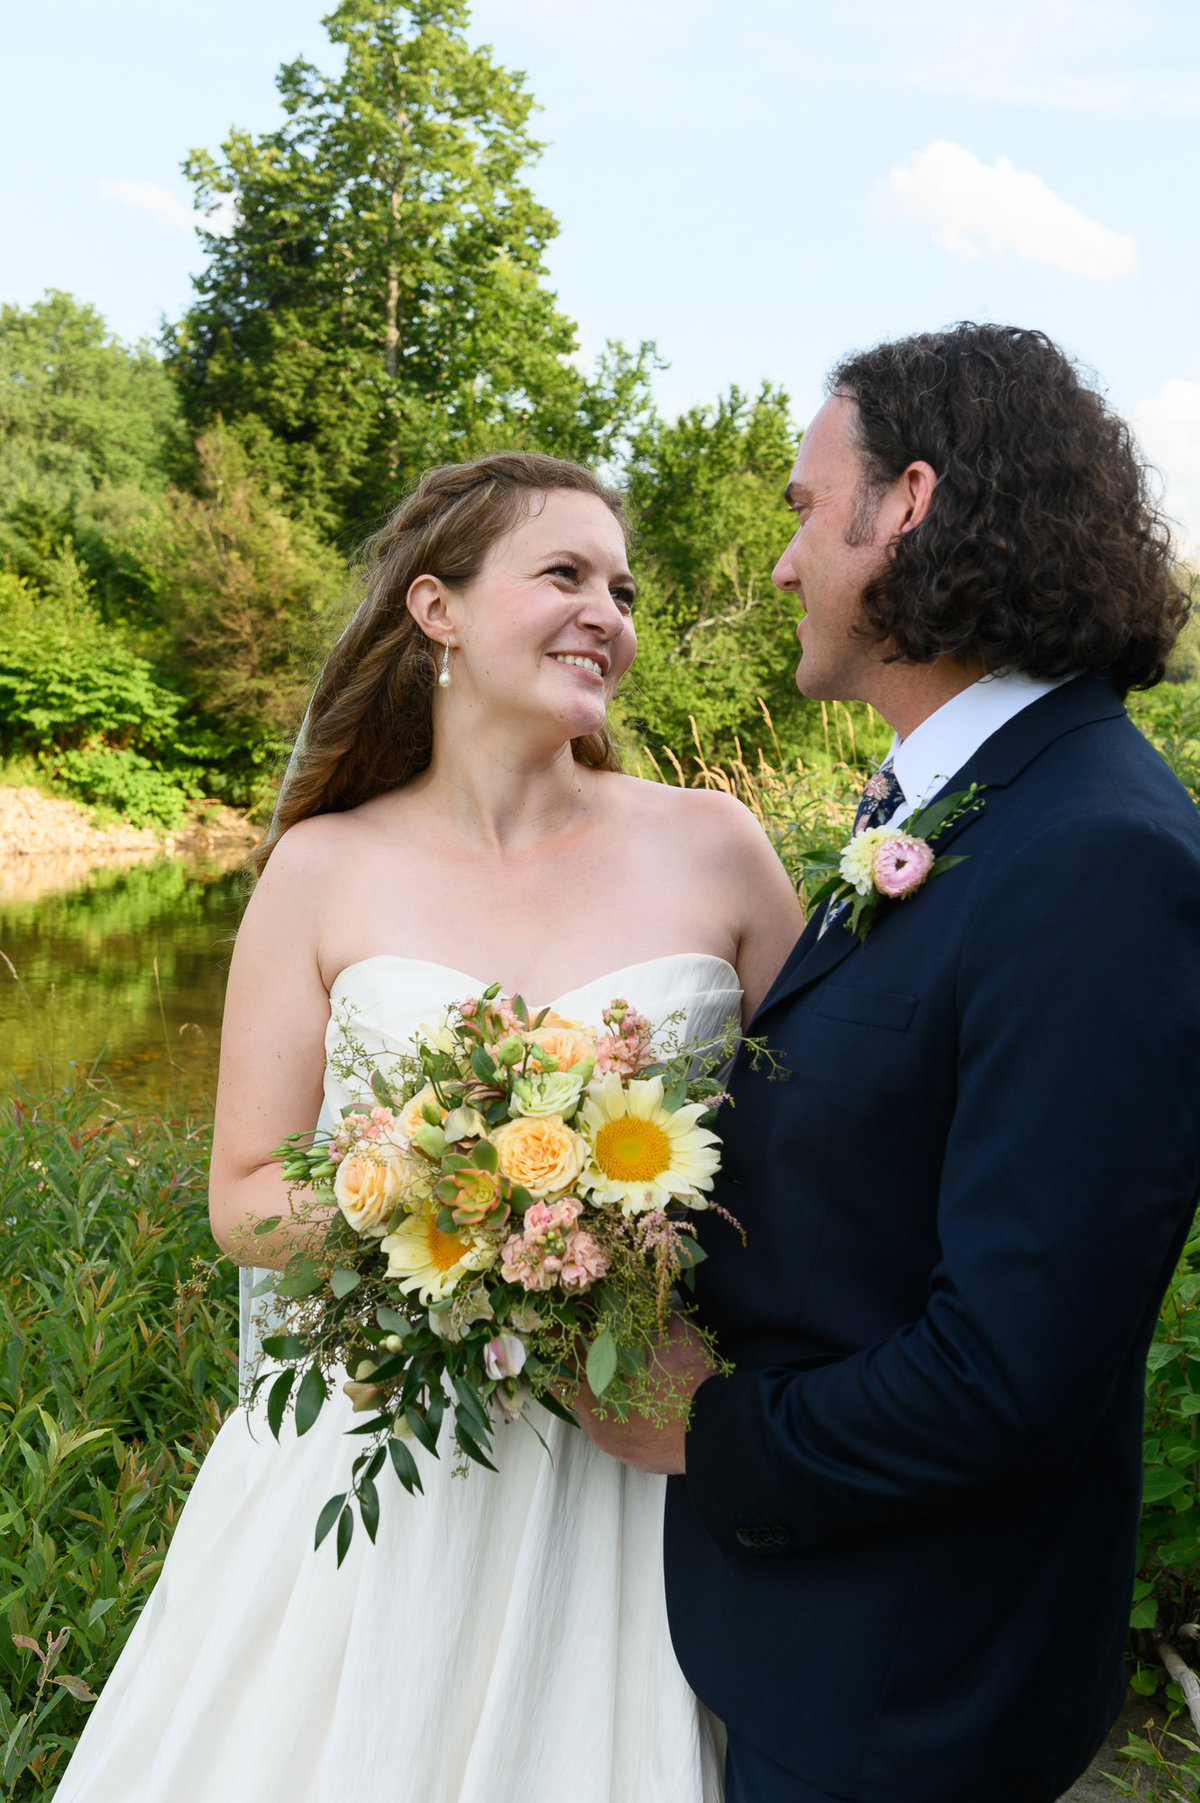 real and natural wedding photos in Vermont that are not staged